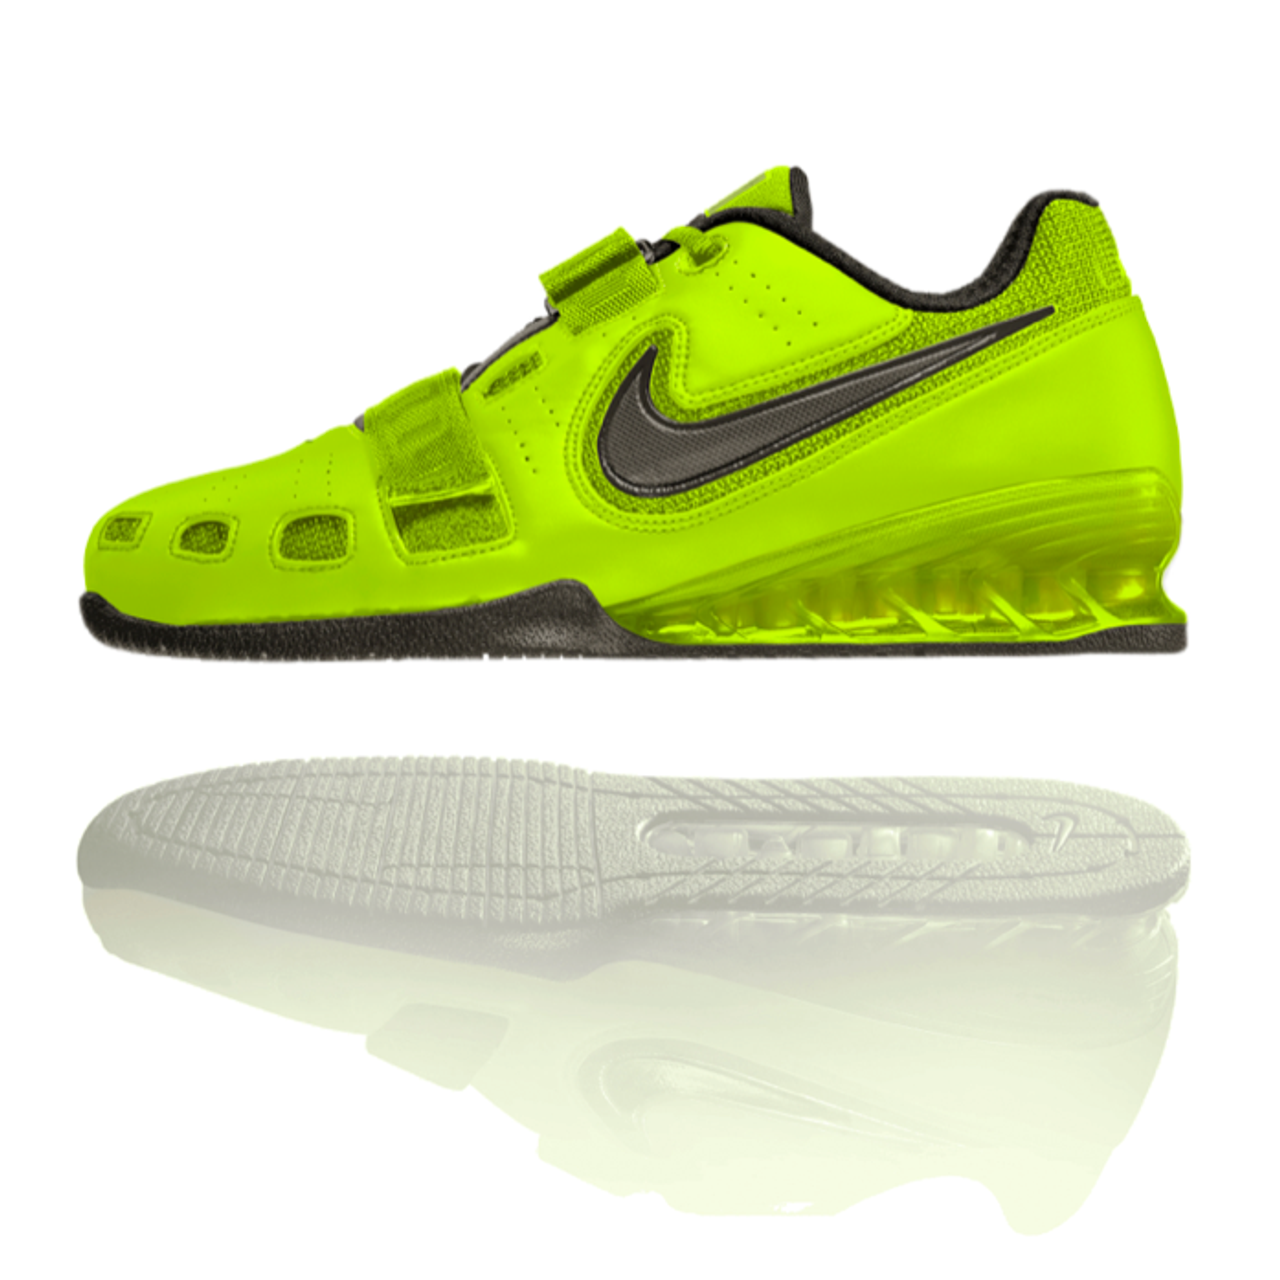 234af4816f528 Nike Romaleos 2 Weightlifting Shoes - Volt   Sequoia